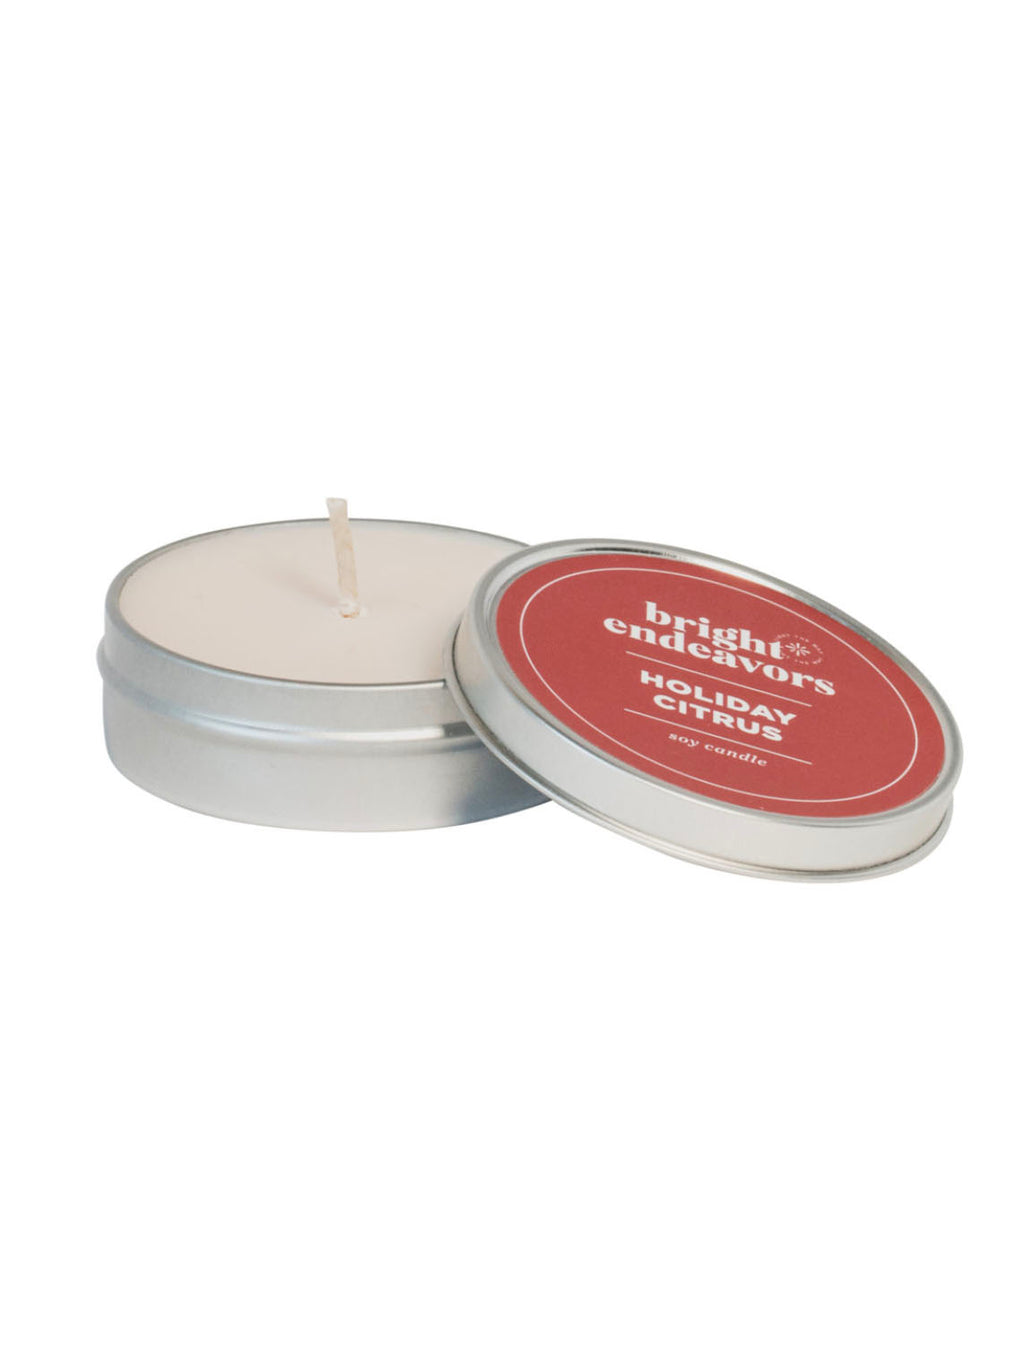 Bright Endeavors 4oz Small Tin Candle in Holiday Citrus